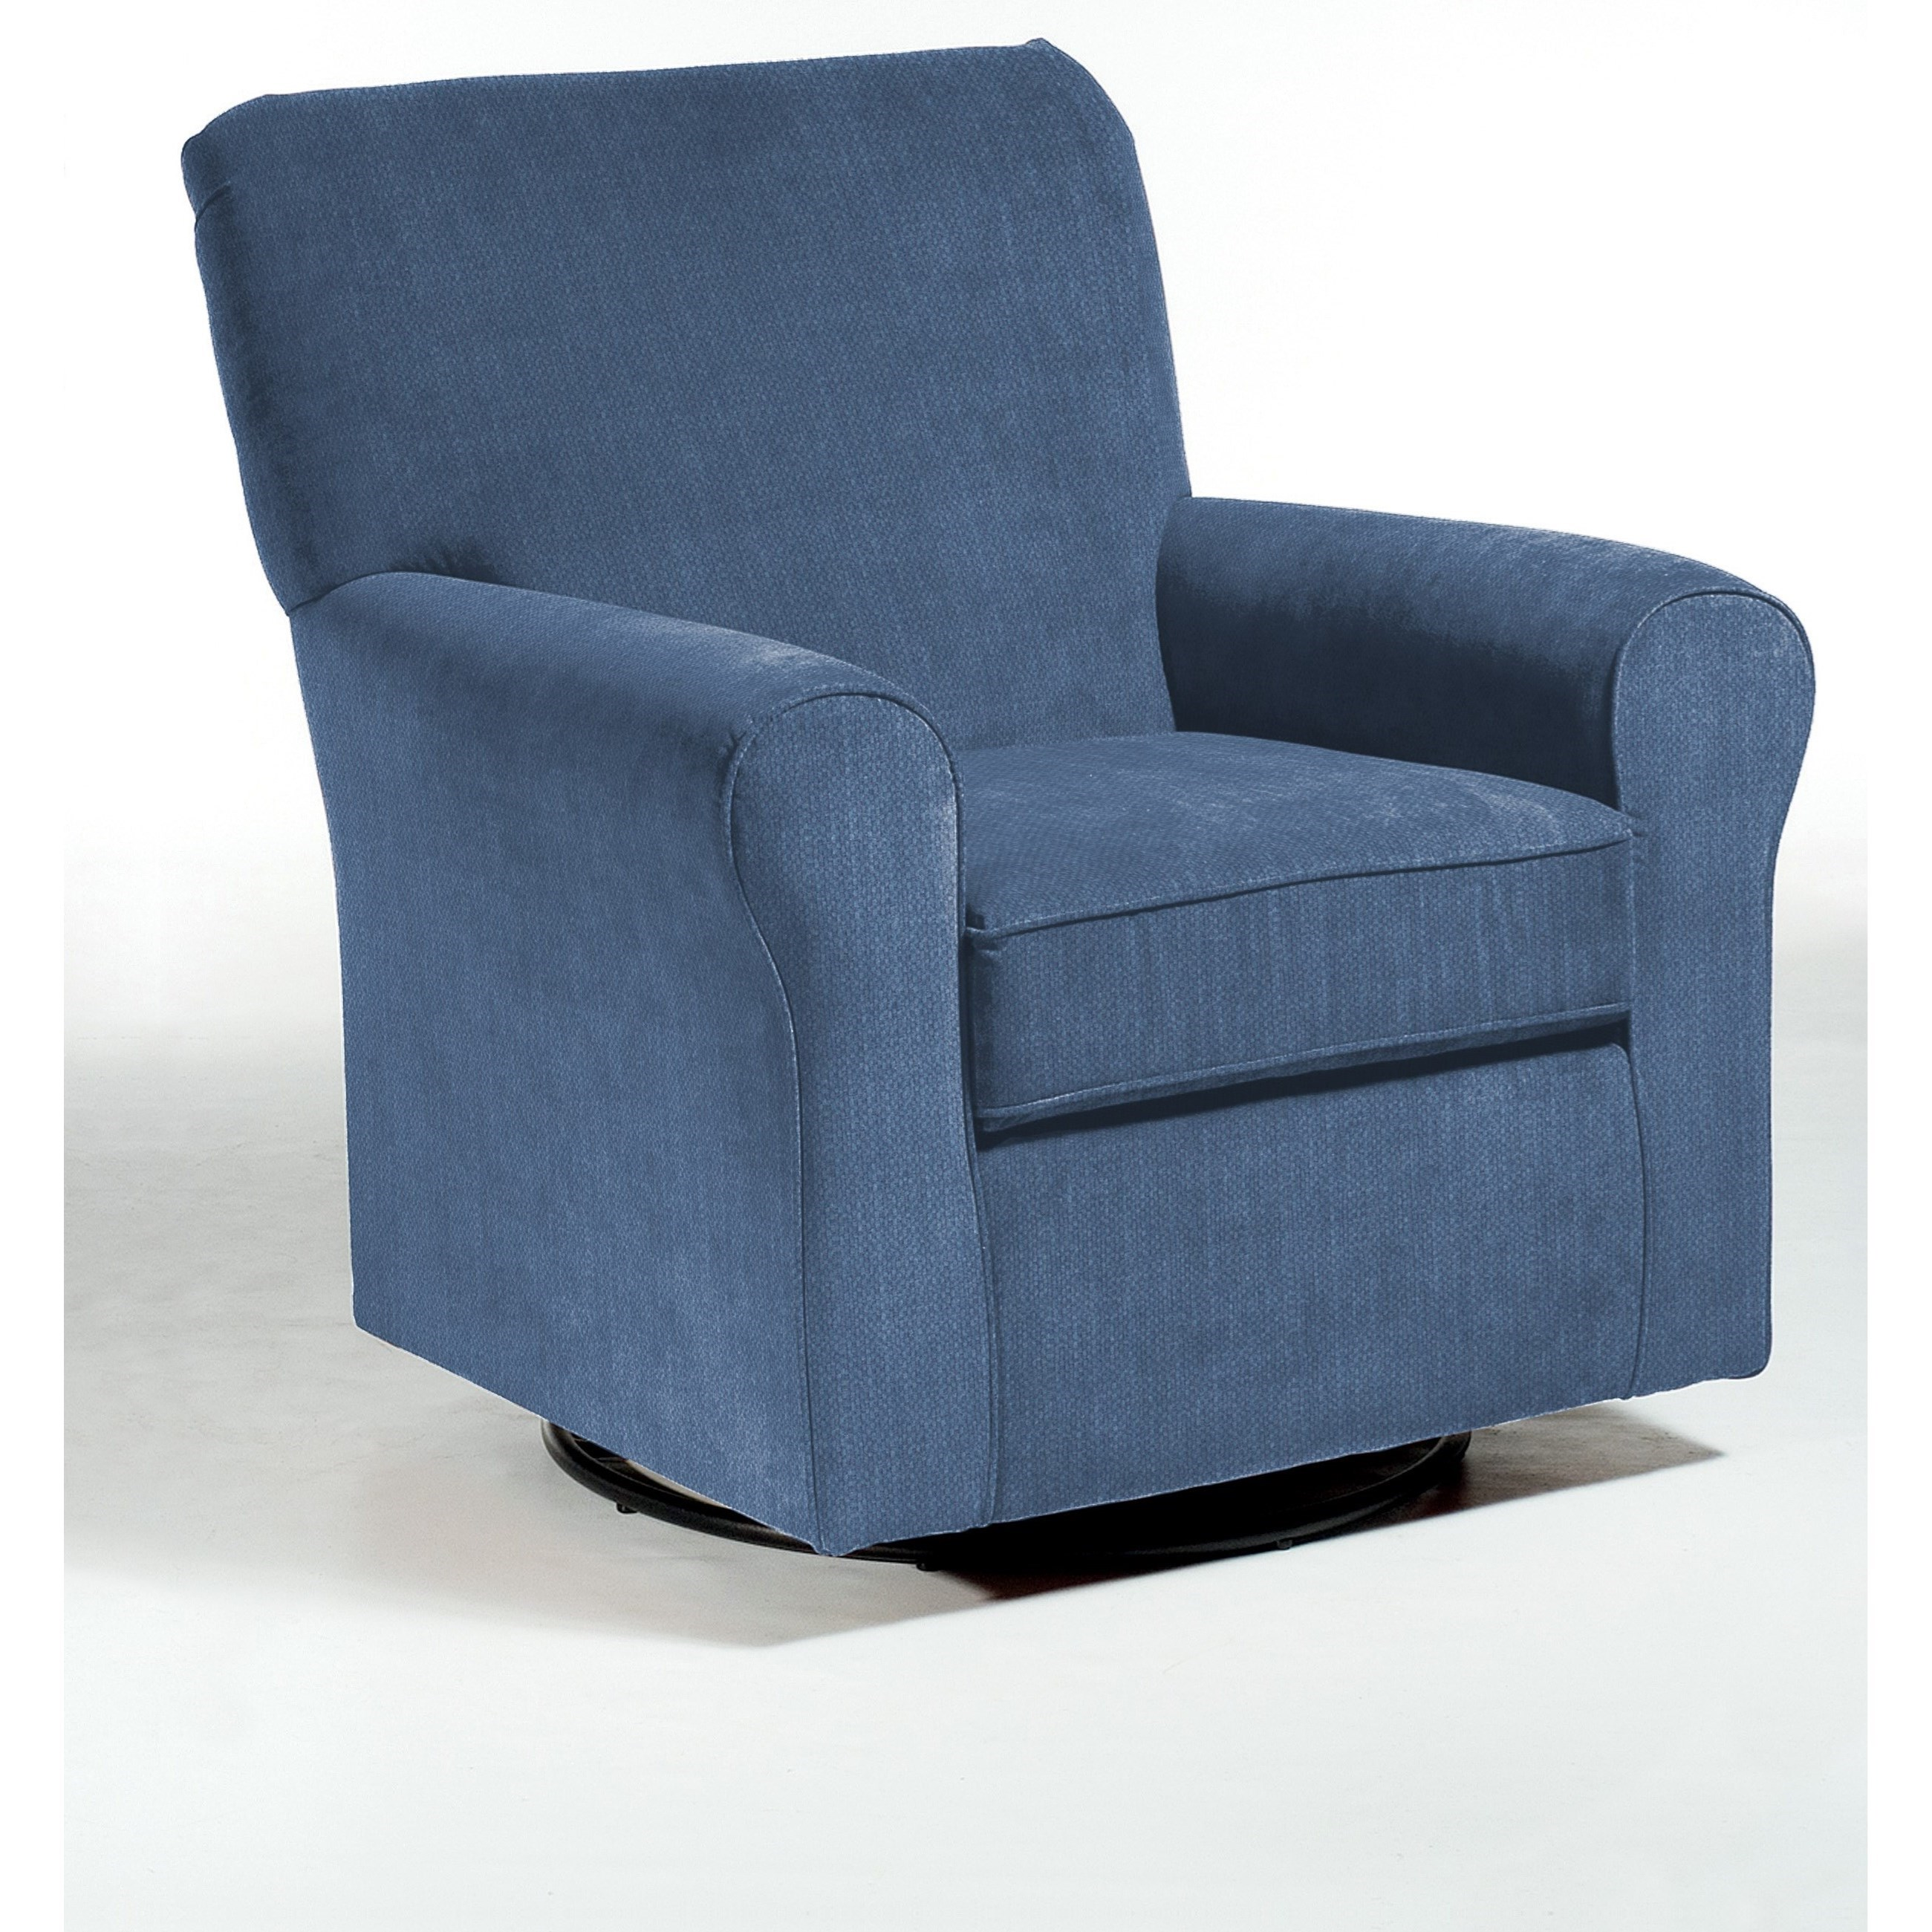 Best Home Furnishings Chairs - Swivel Glide Hagen Swivel Glide - Item Number: 4177-20002